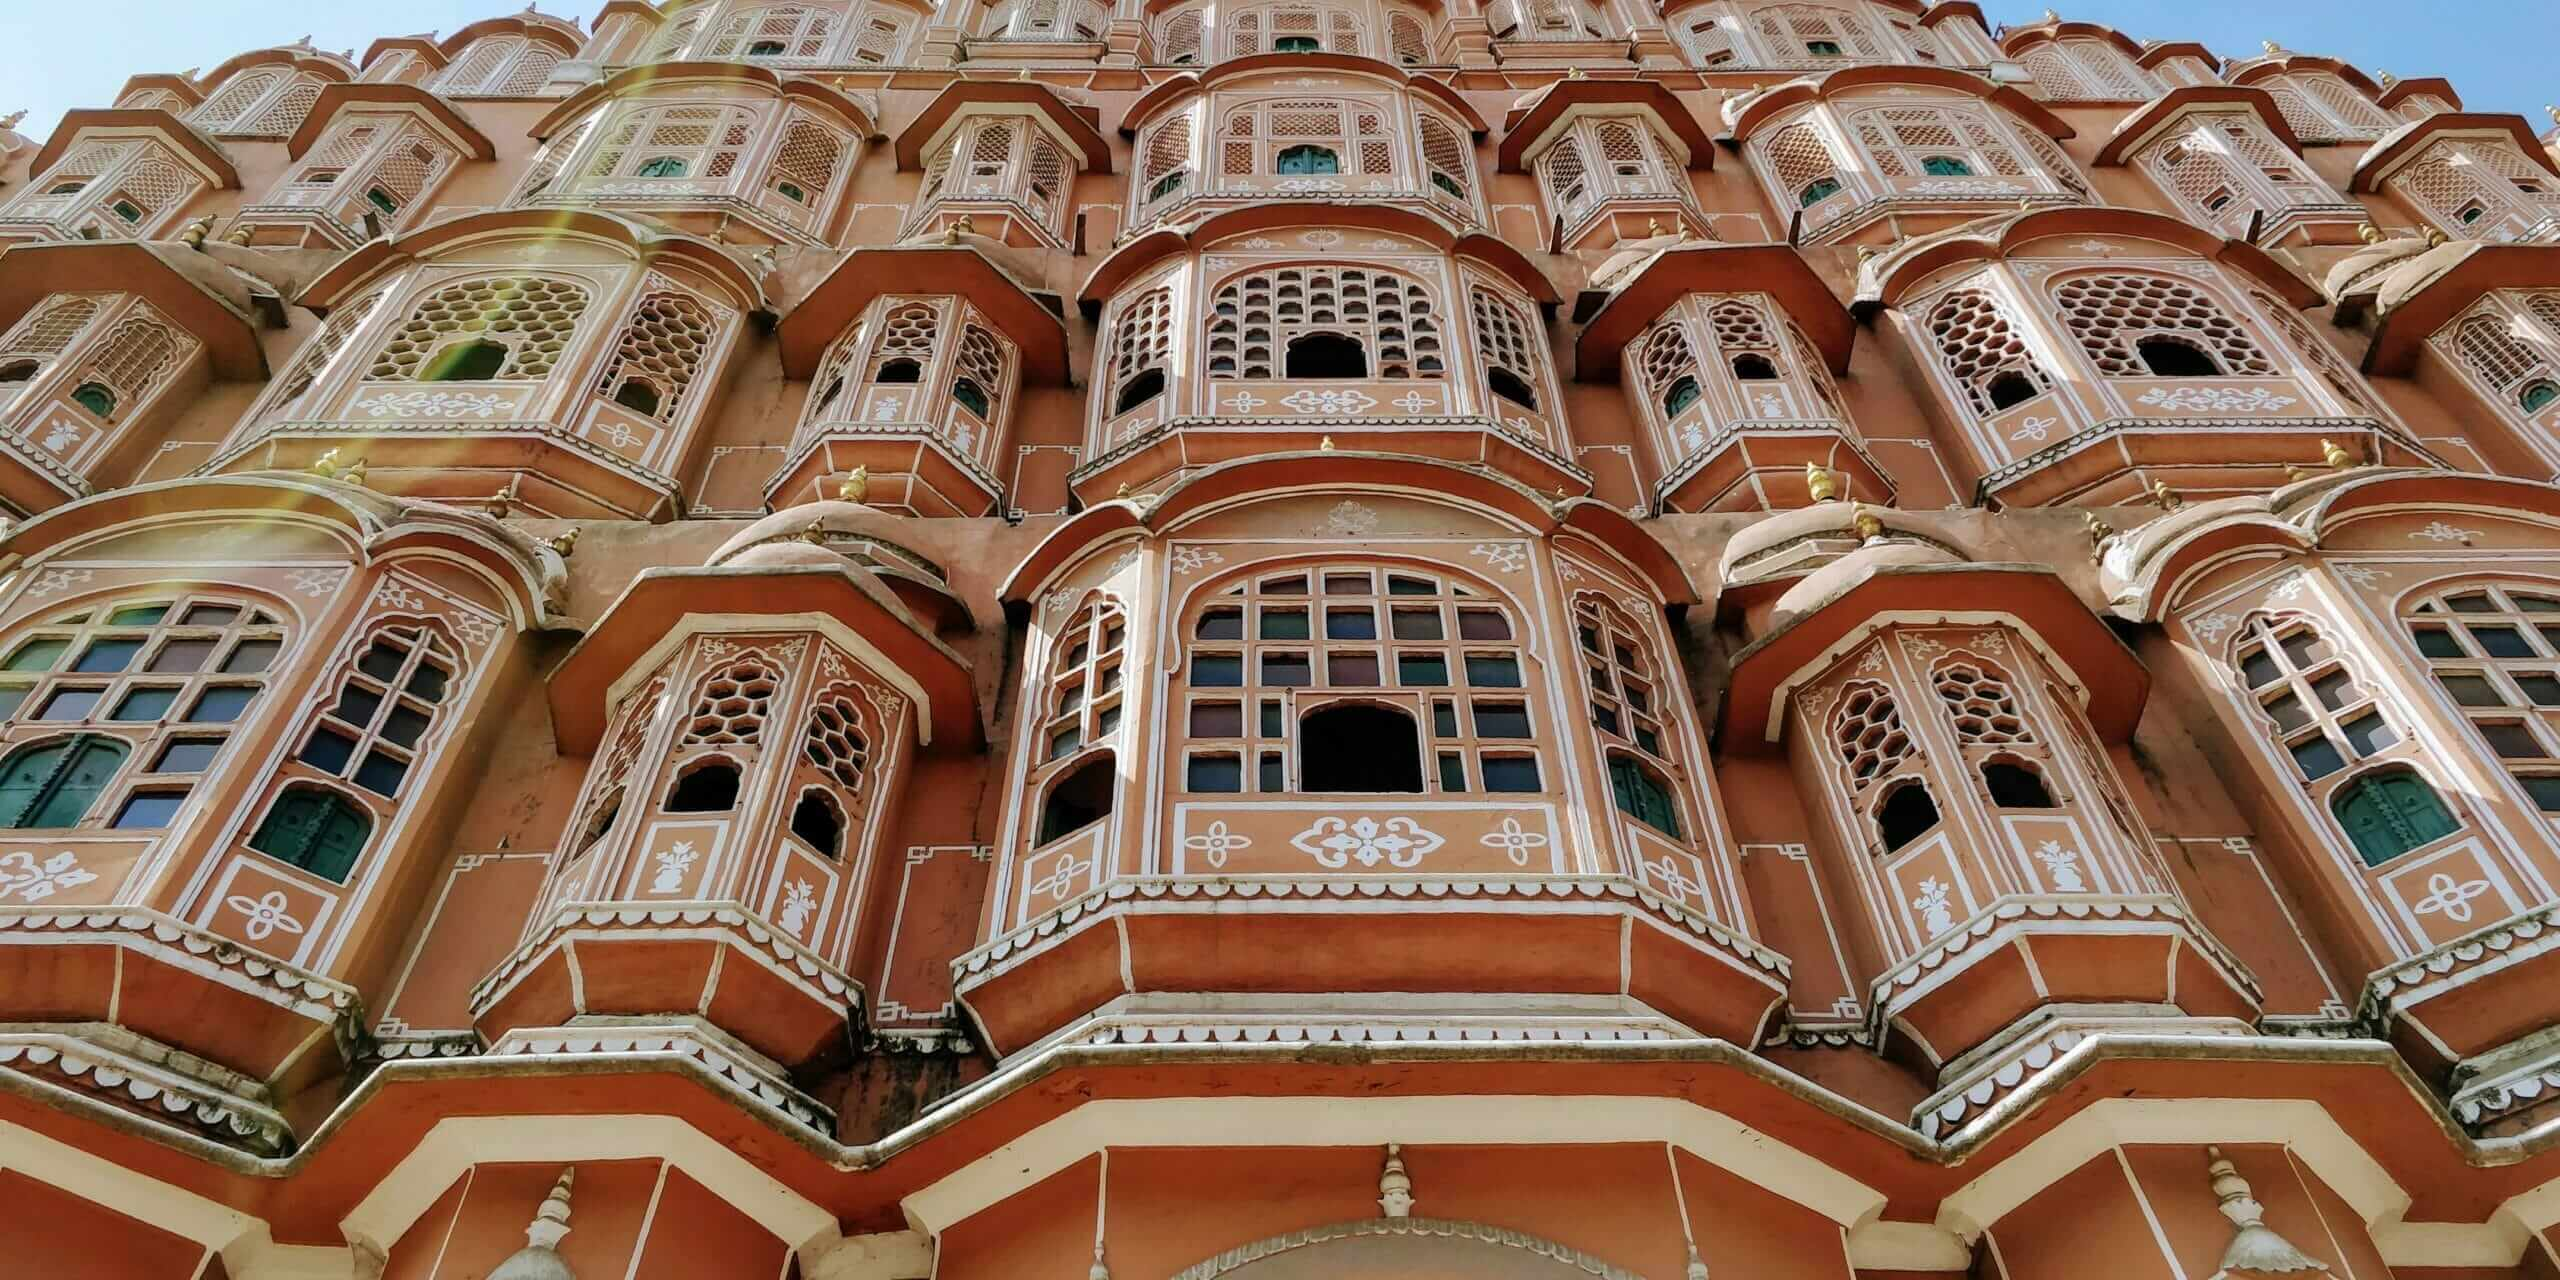 Hawa Mahal in Jaipur, India also know as Palace of the Winds